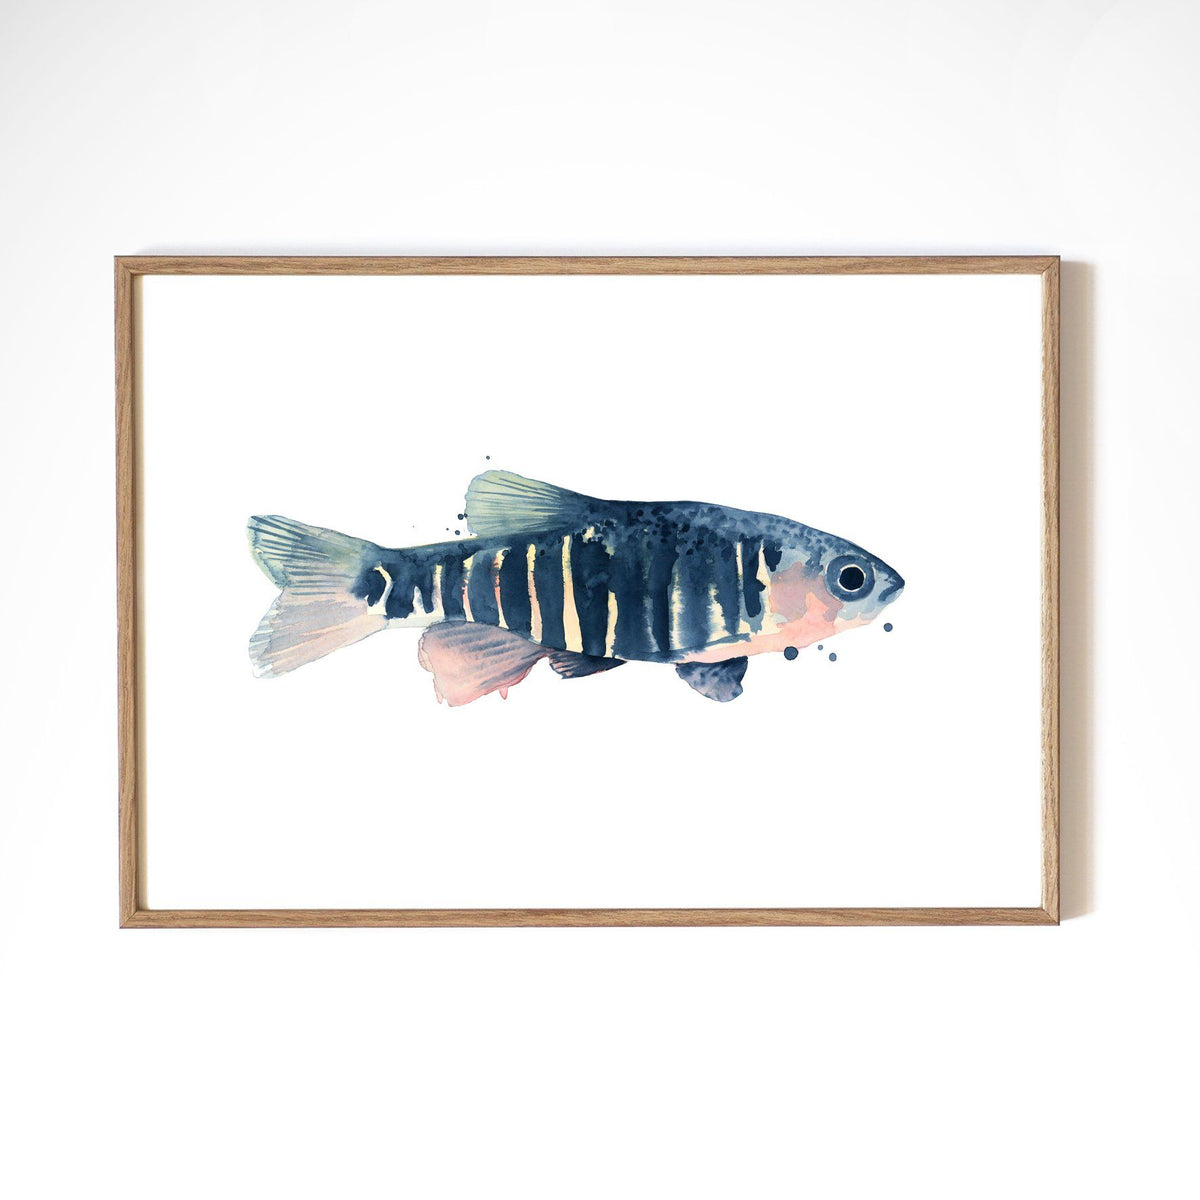 Kunstdruck - BLUE FISH Kunstdruck Atelier Leo la Douce